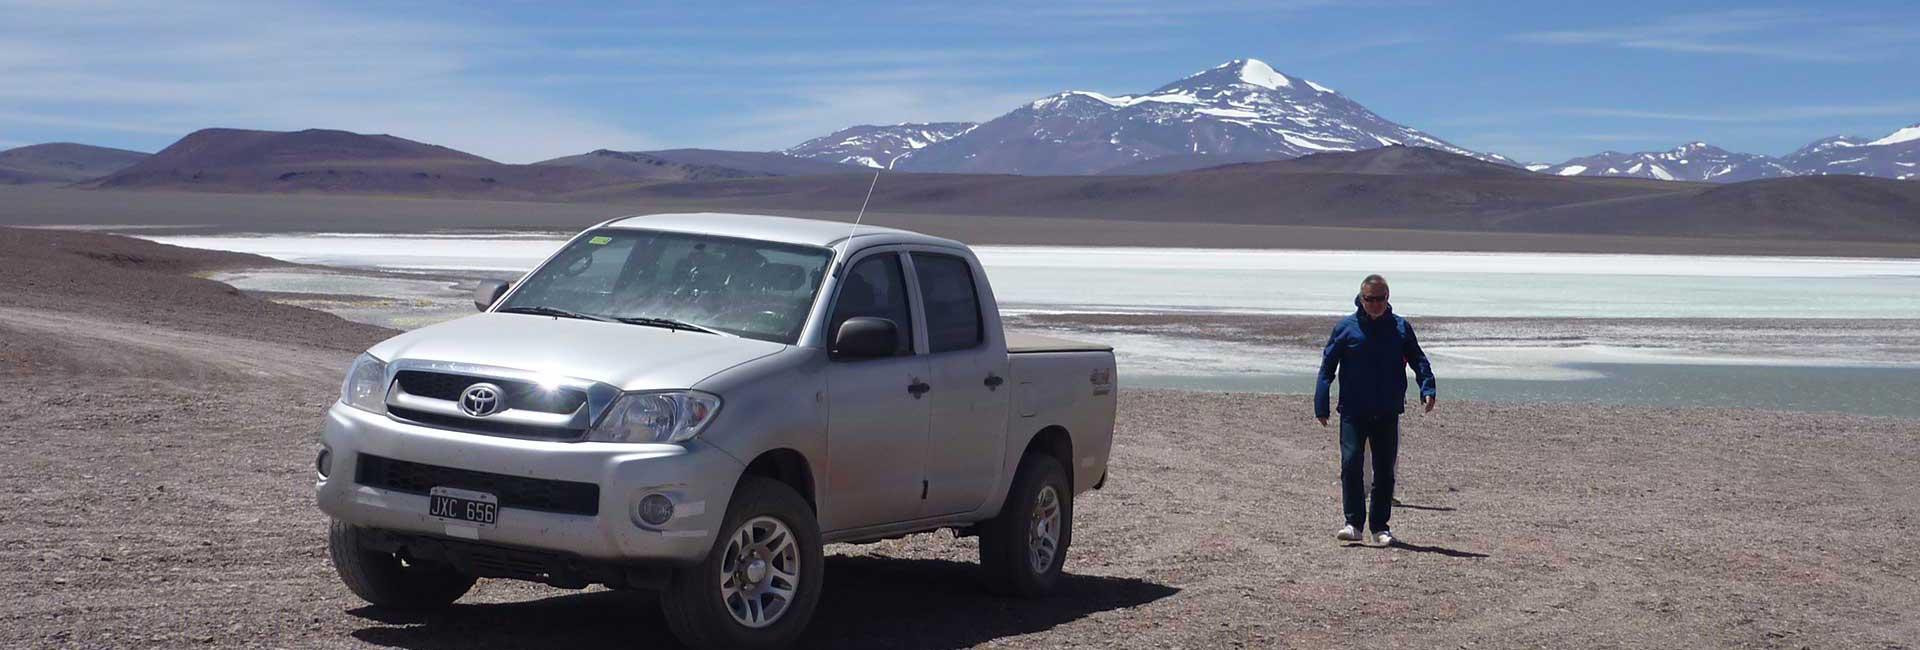 Toyota Hilux in front of Laguna Brava